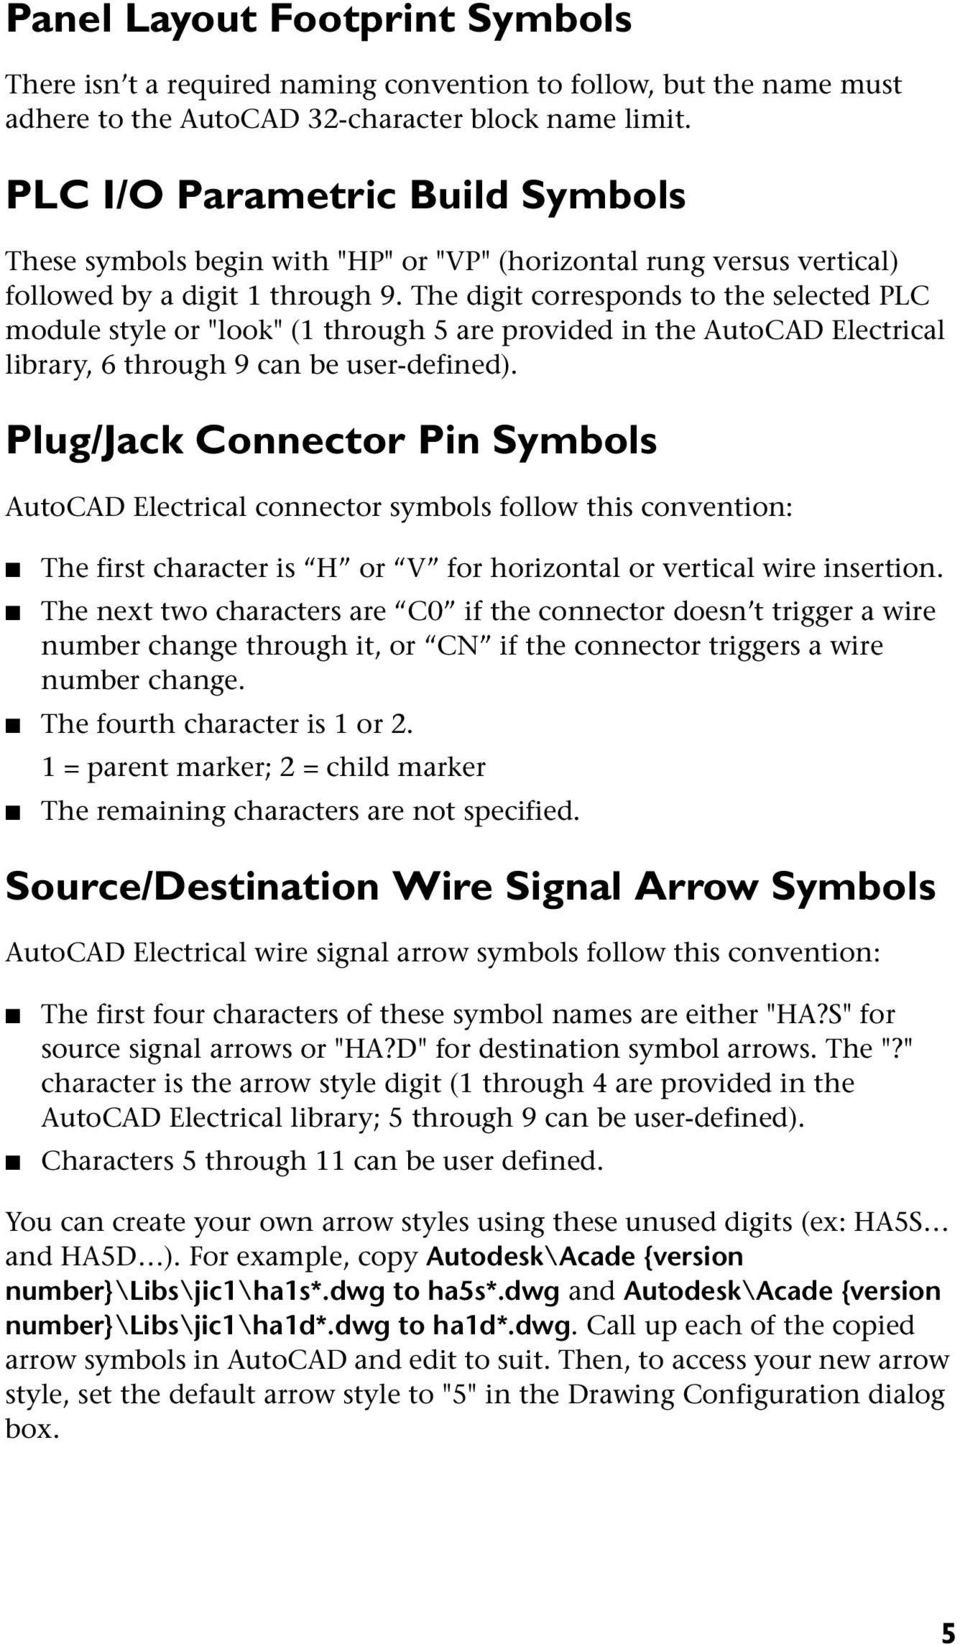 Funky Electrical Symbols And What They Mean Composition - Electrical ...